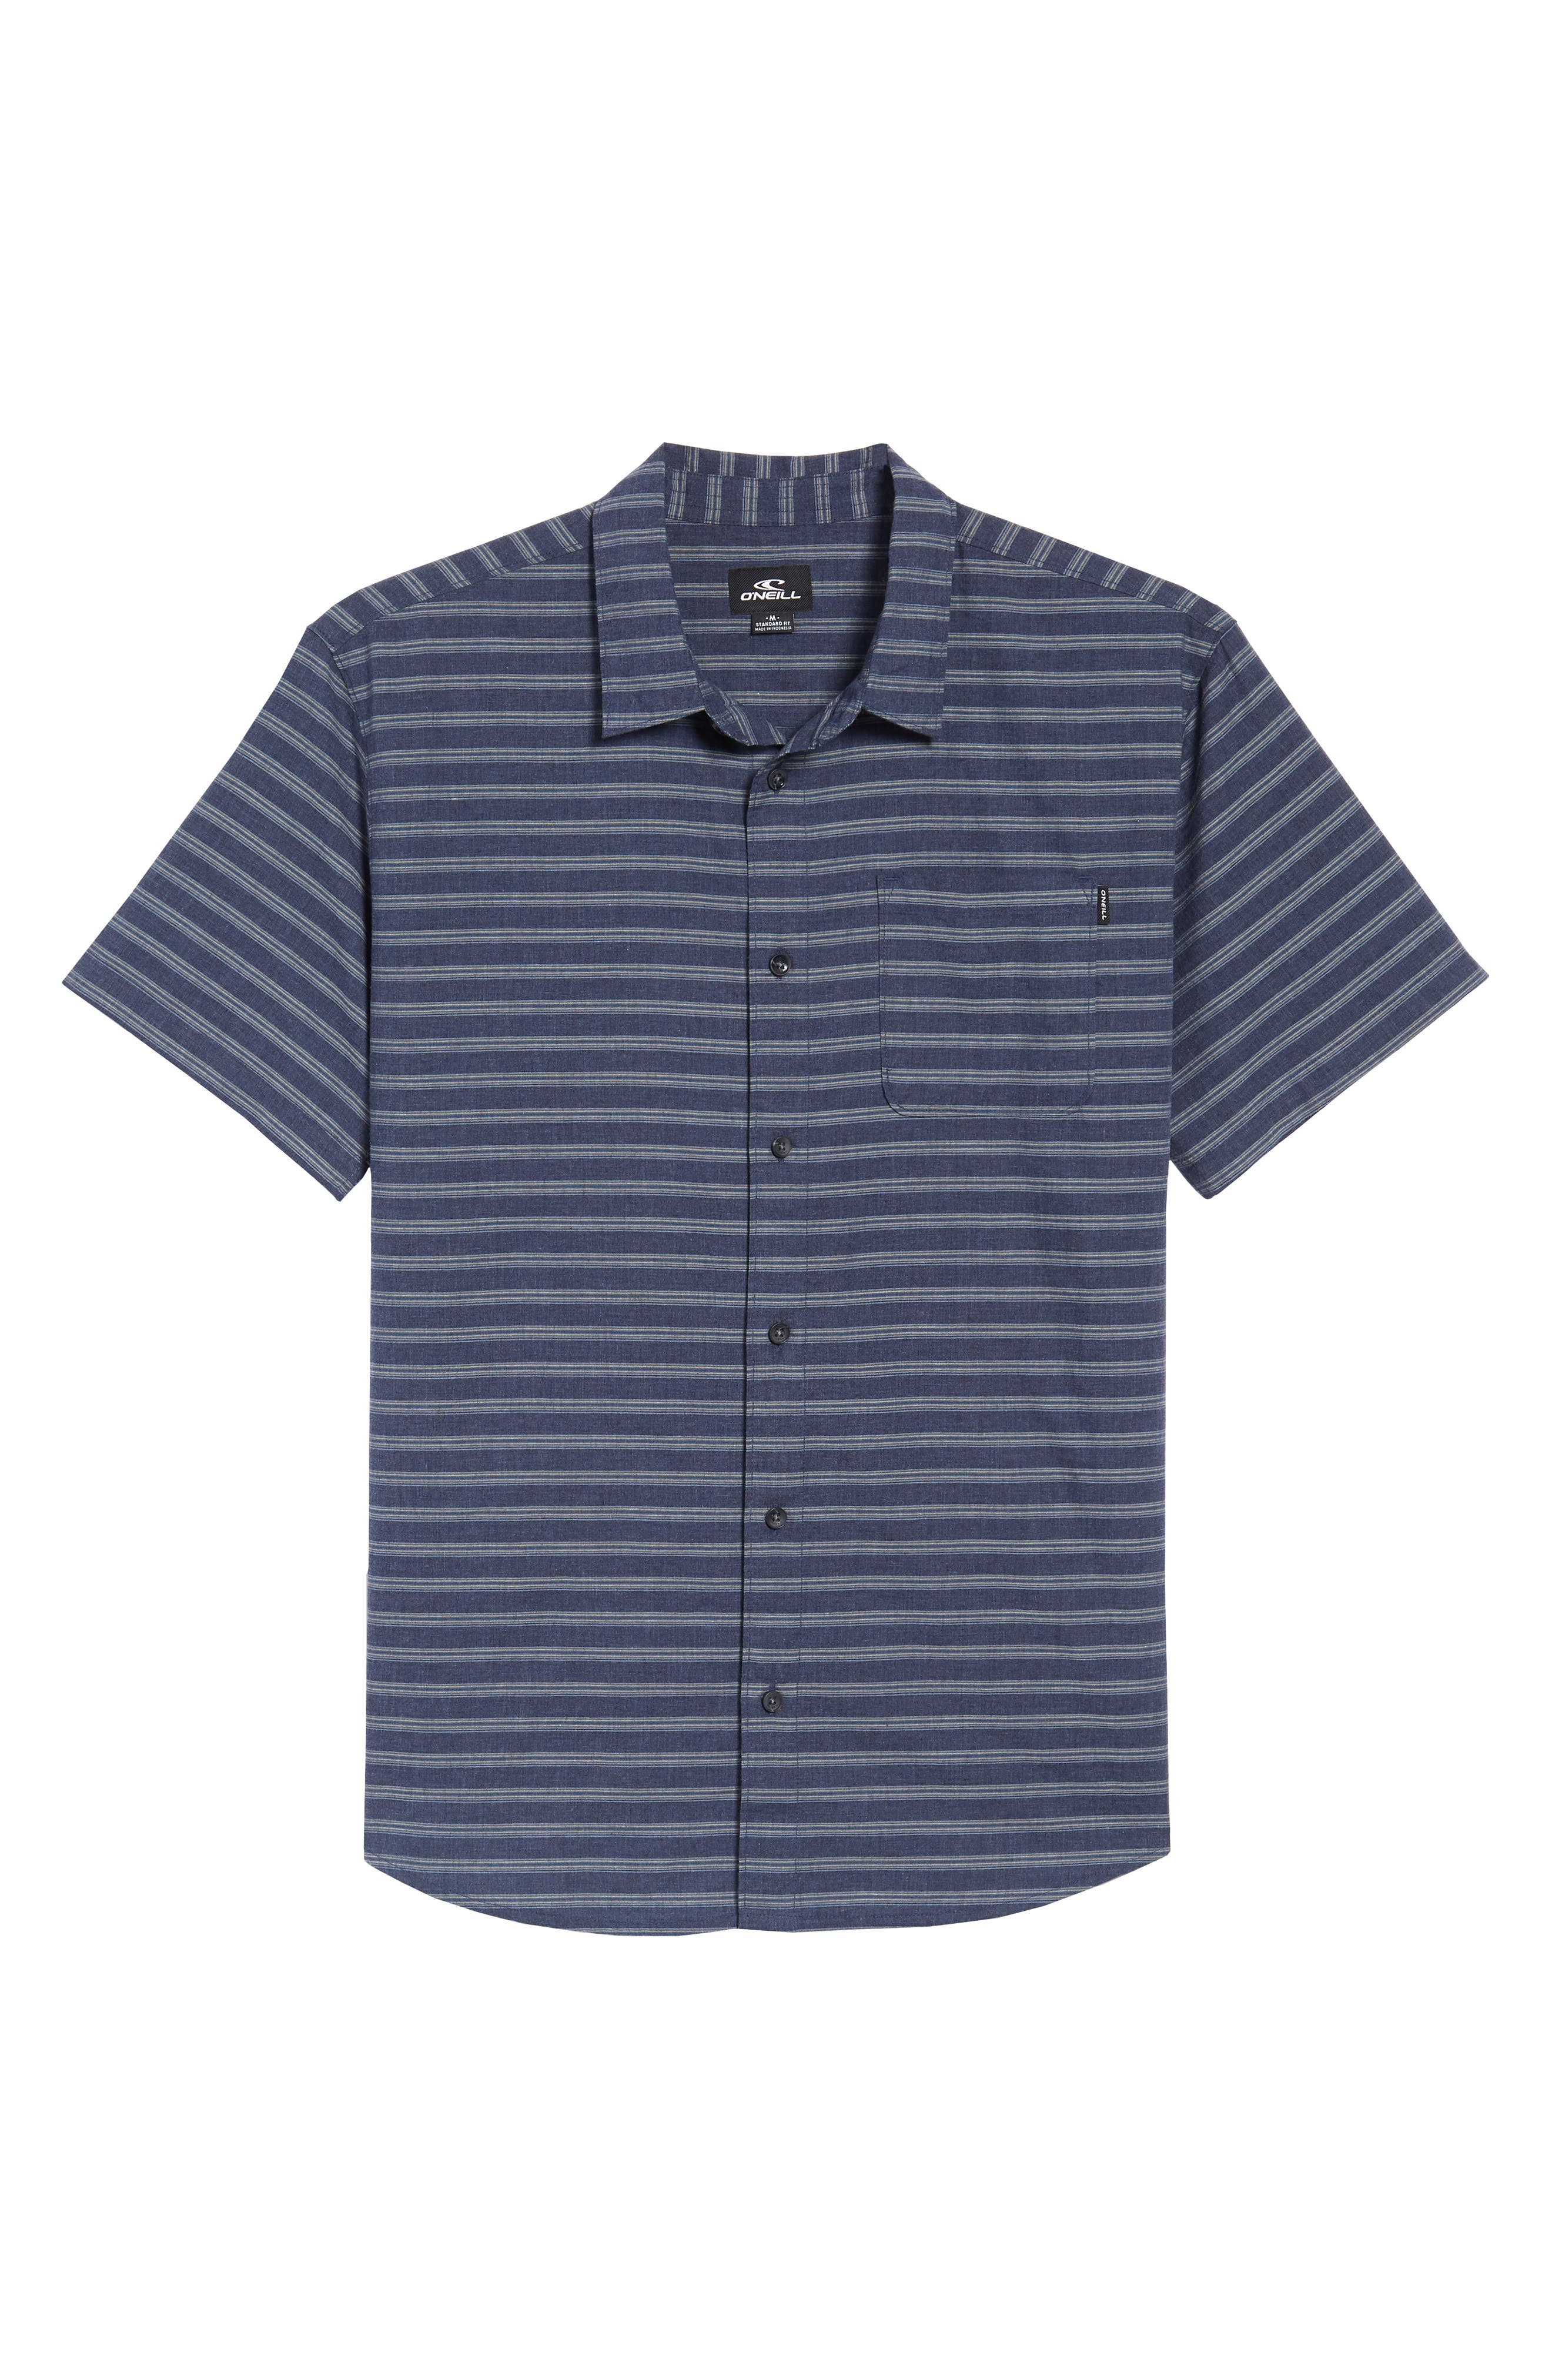 Stag Short Sleeve Shirt,                             Alternate thumbnail 6, color,                             Navy